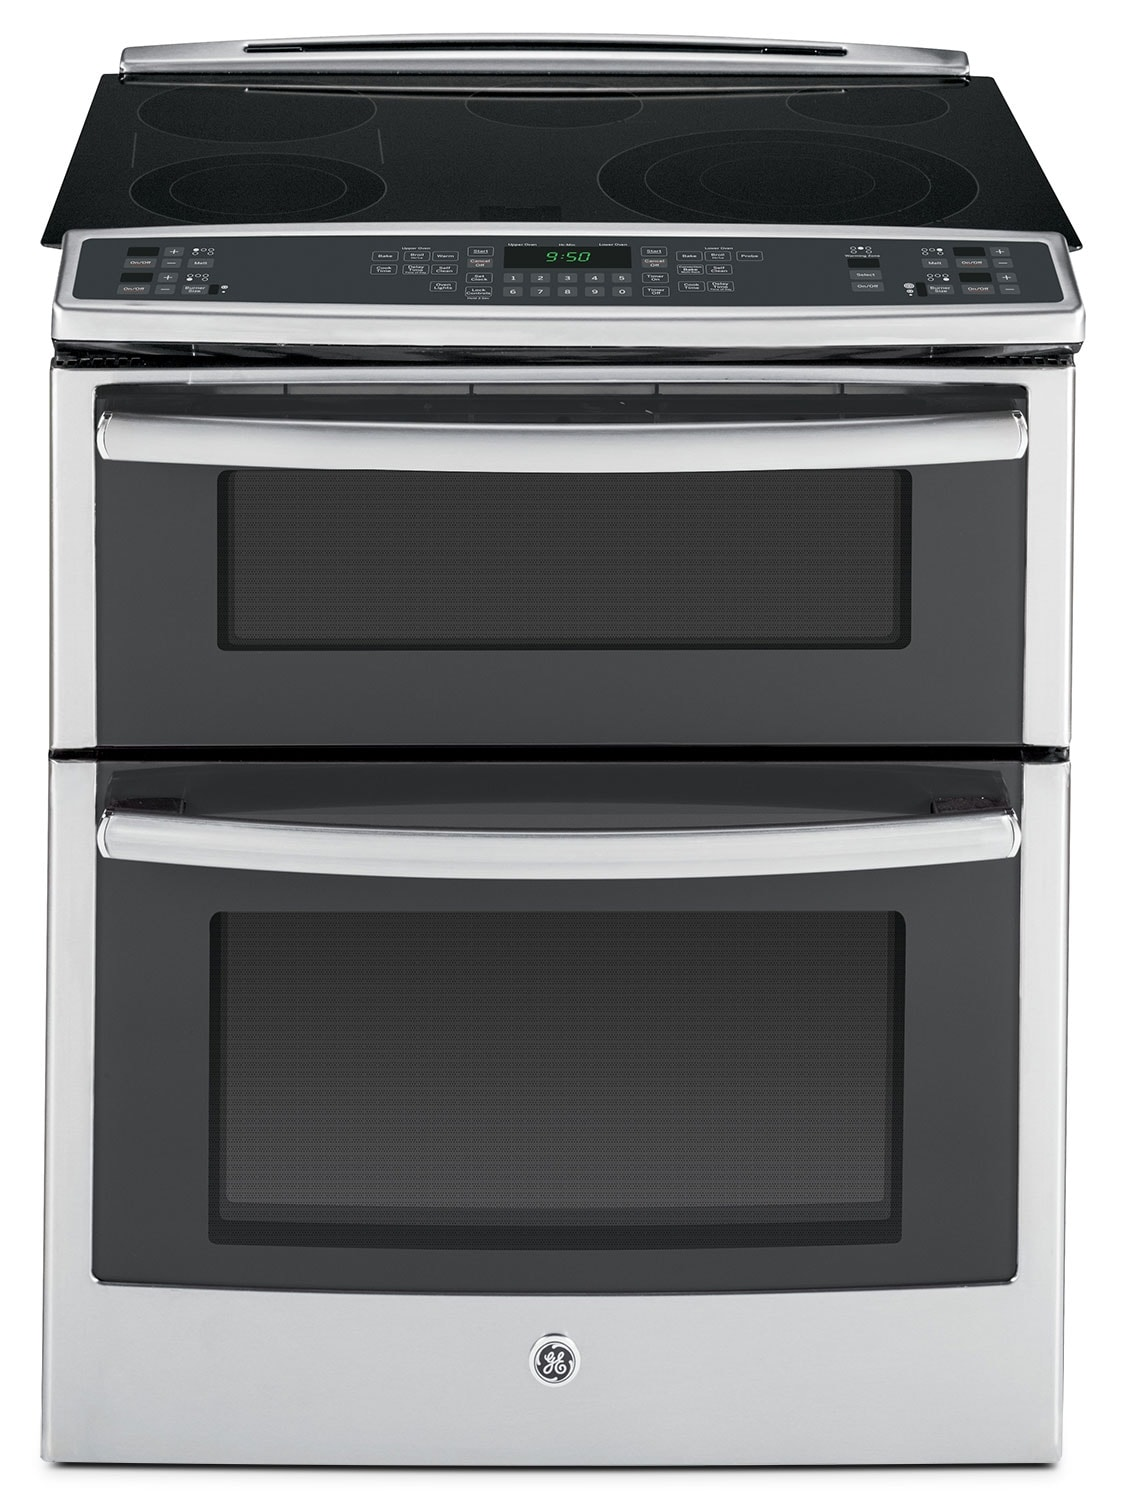 GE Stainless Steel Slide-In Electric Double-Oven Convection Range (6.6 Cu. Ft.) - PS950SFSS